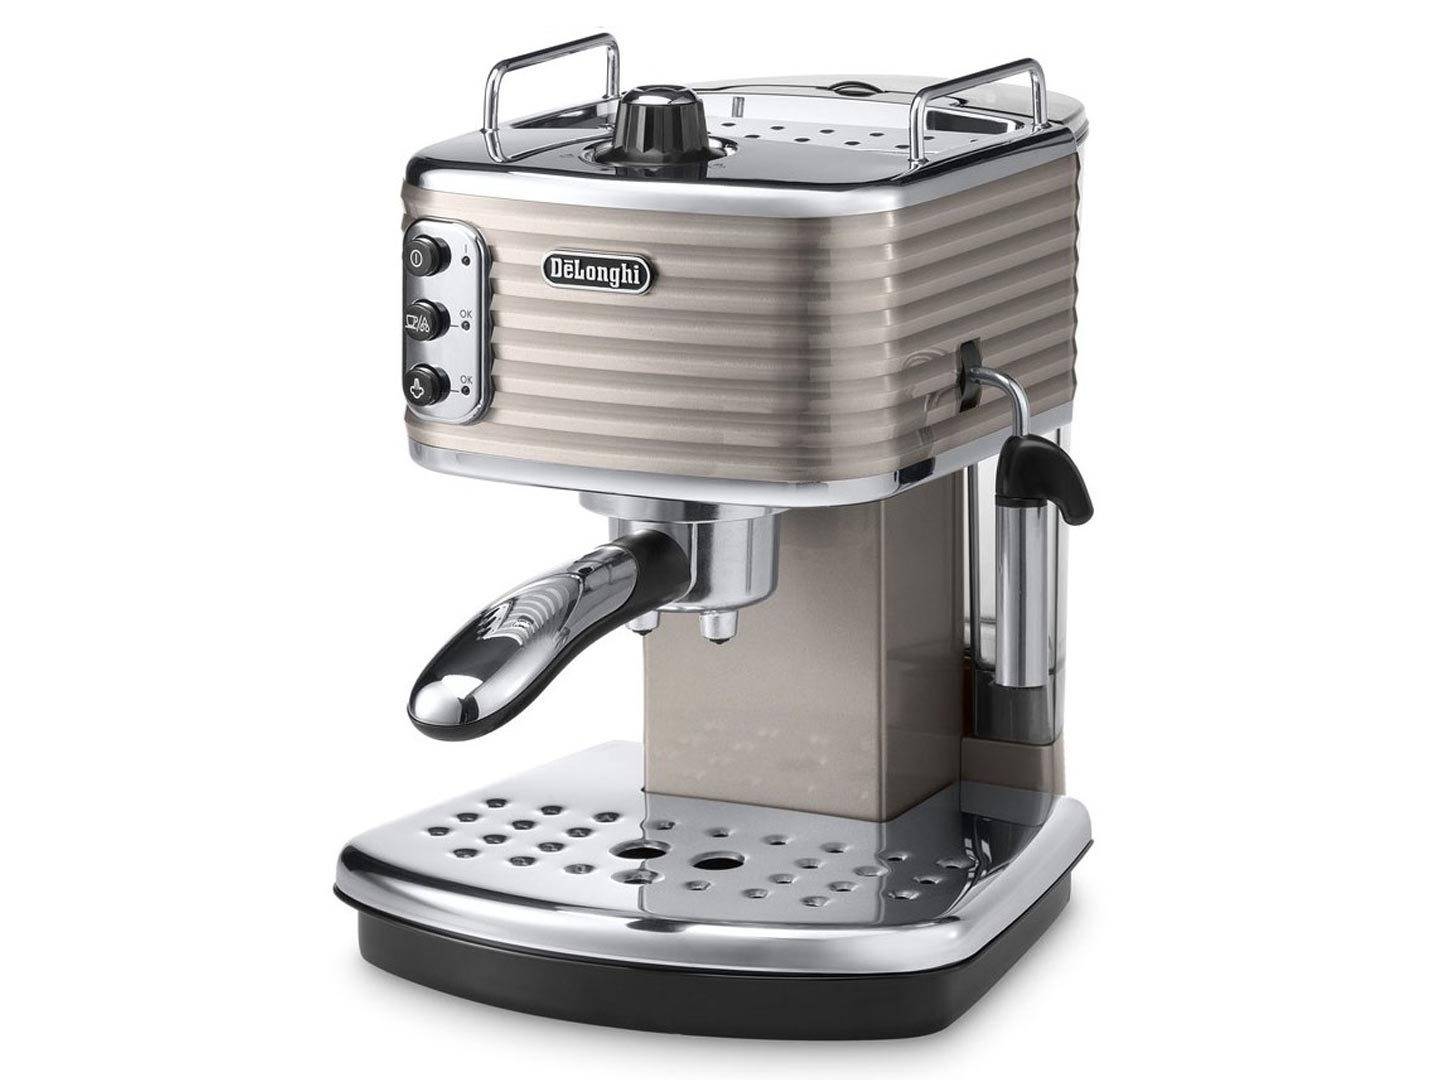 Delonghi ECZ351BG Coffee Machine Champagne